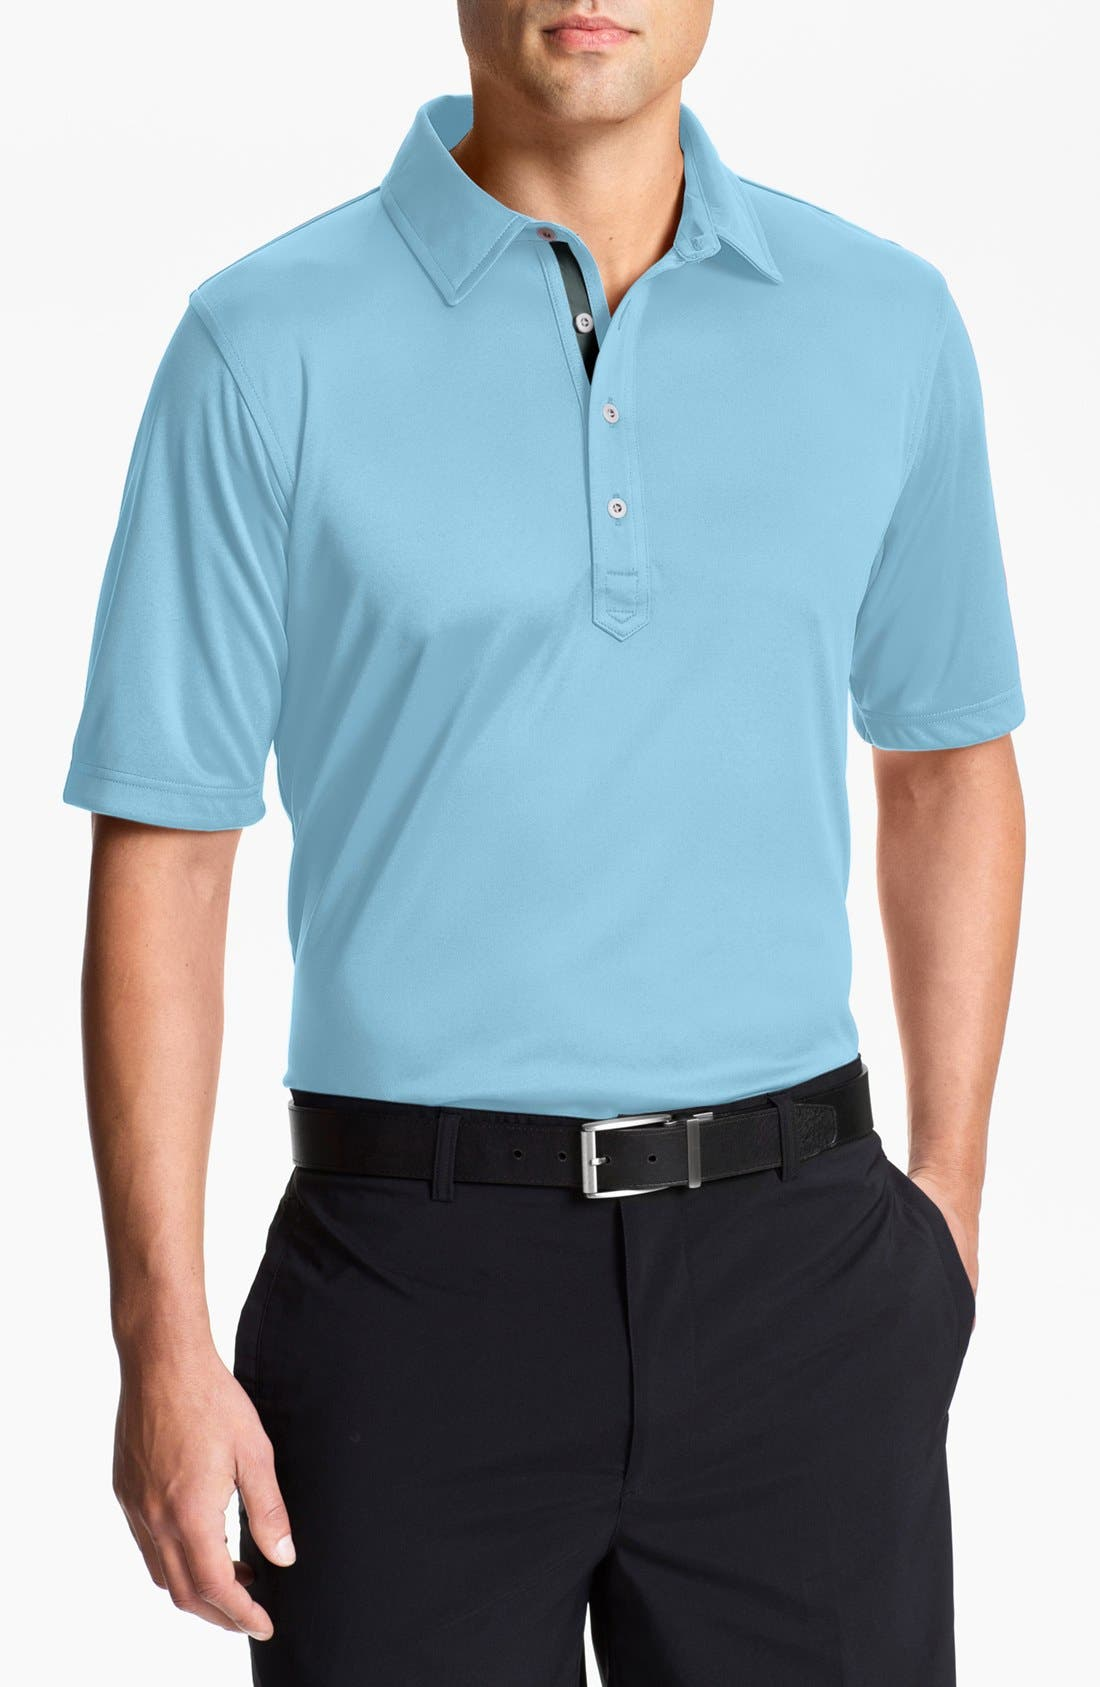 Alternate Image 1 Selected - Zero Restriction 'Forged' Polo (Online Only)